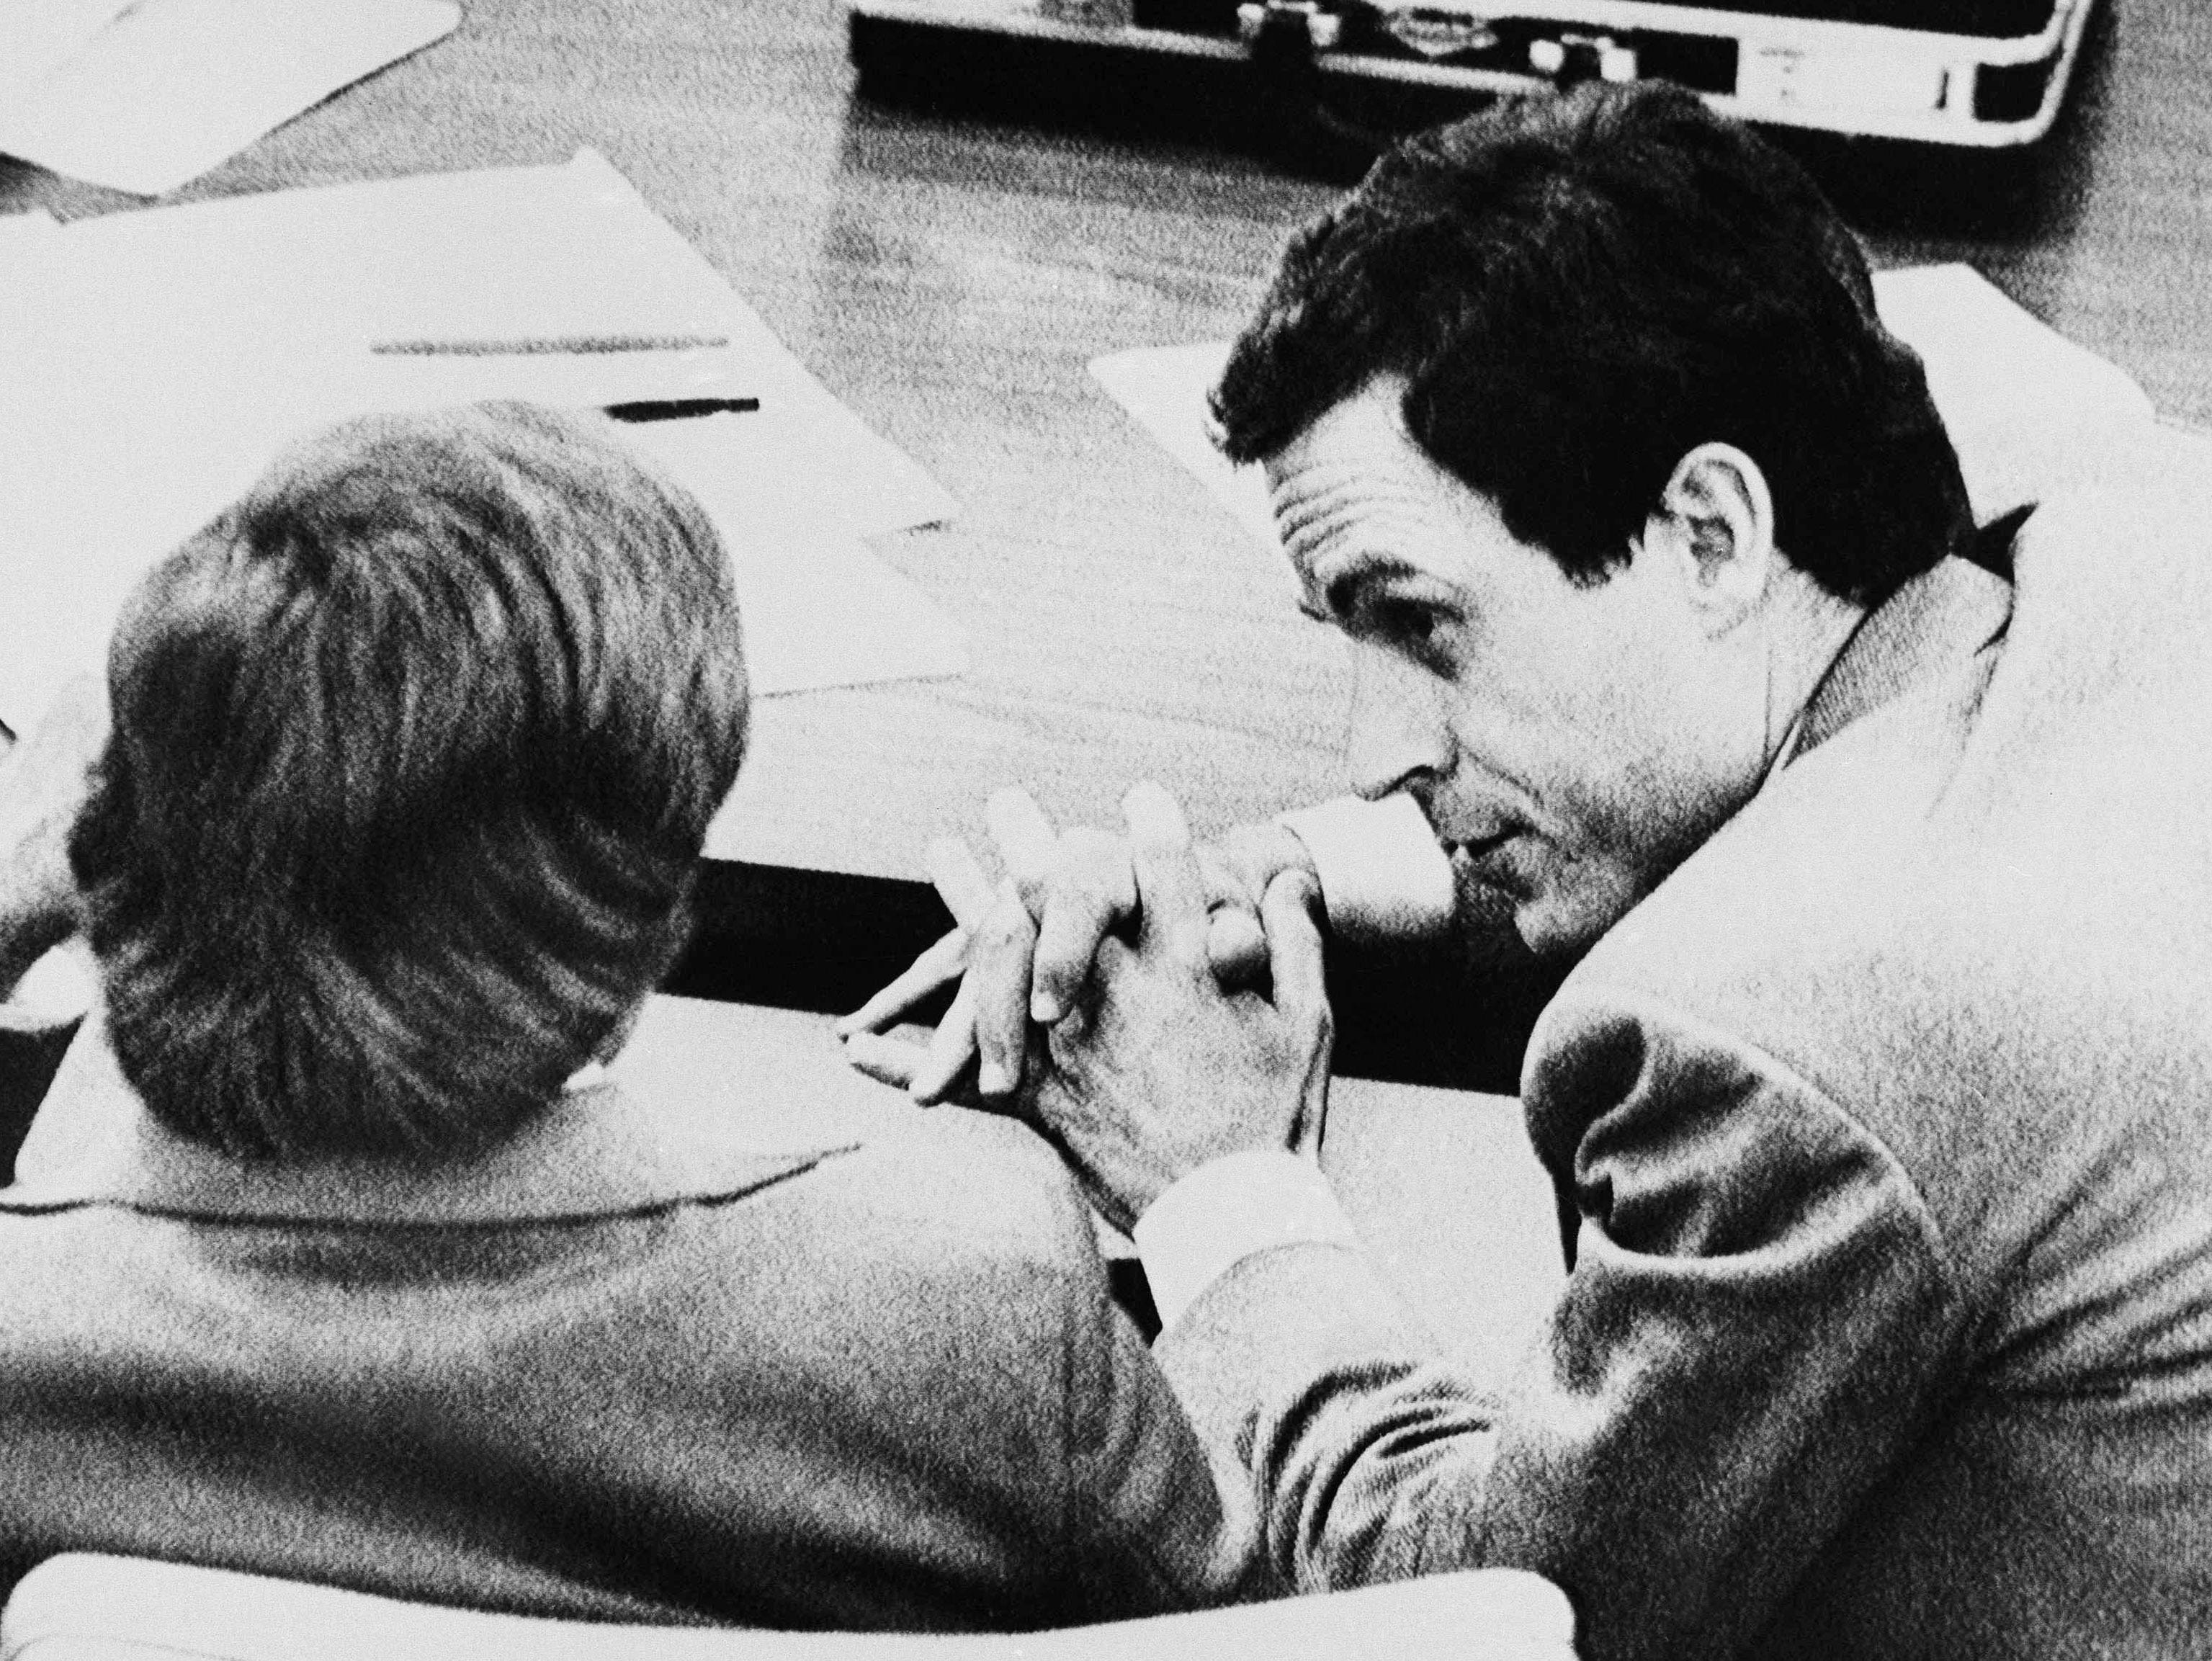 Theodore Bundy confers with his public defender Lynn Thompson, left, during jury selection, Nov. 6, 1979, in Live Oak, Fla.  Bundy is accused in the abduction murder of 12 year-old Kimberly Leach whose body was found near here in Feb. of 1978.